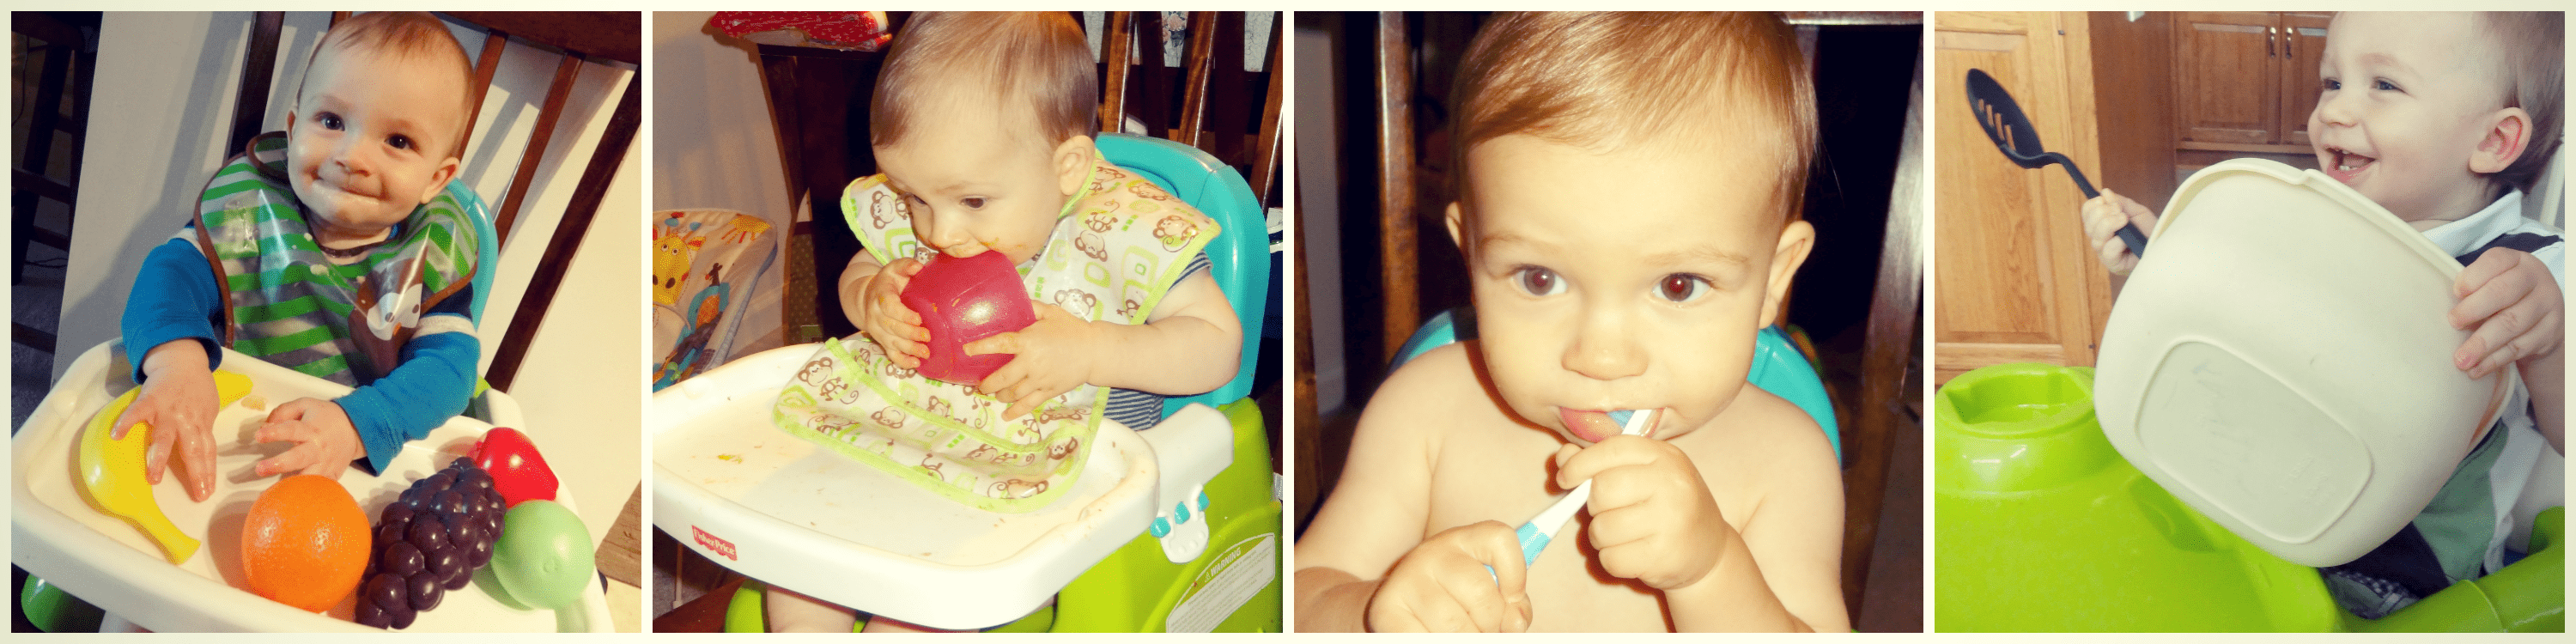 Learning through Play - Baby Toys - In Highchair